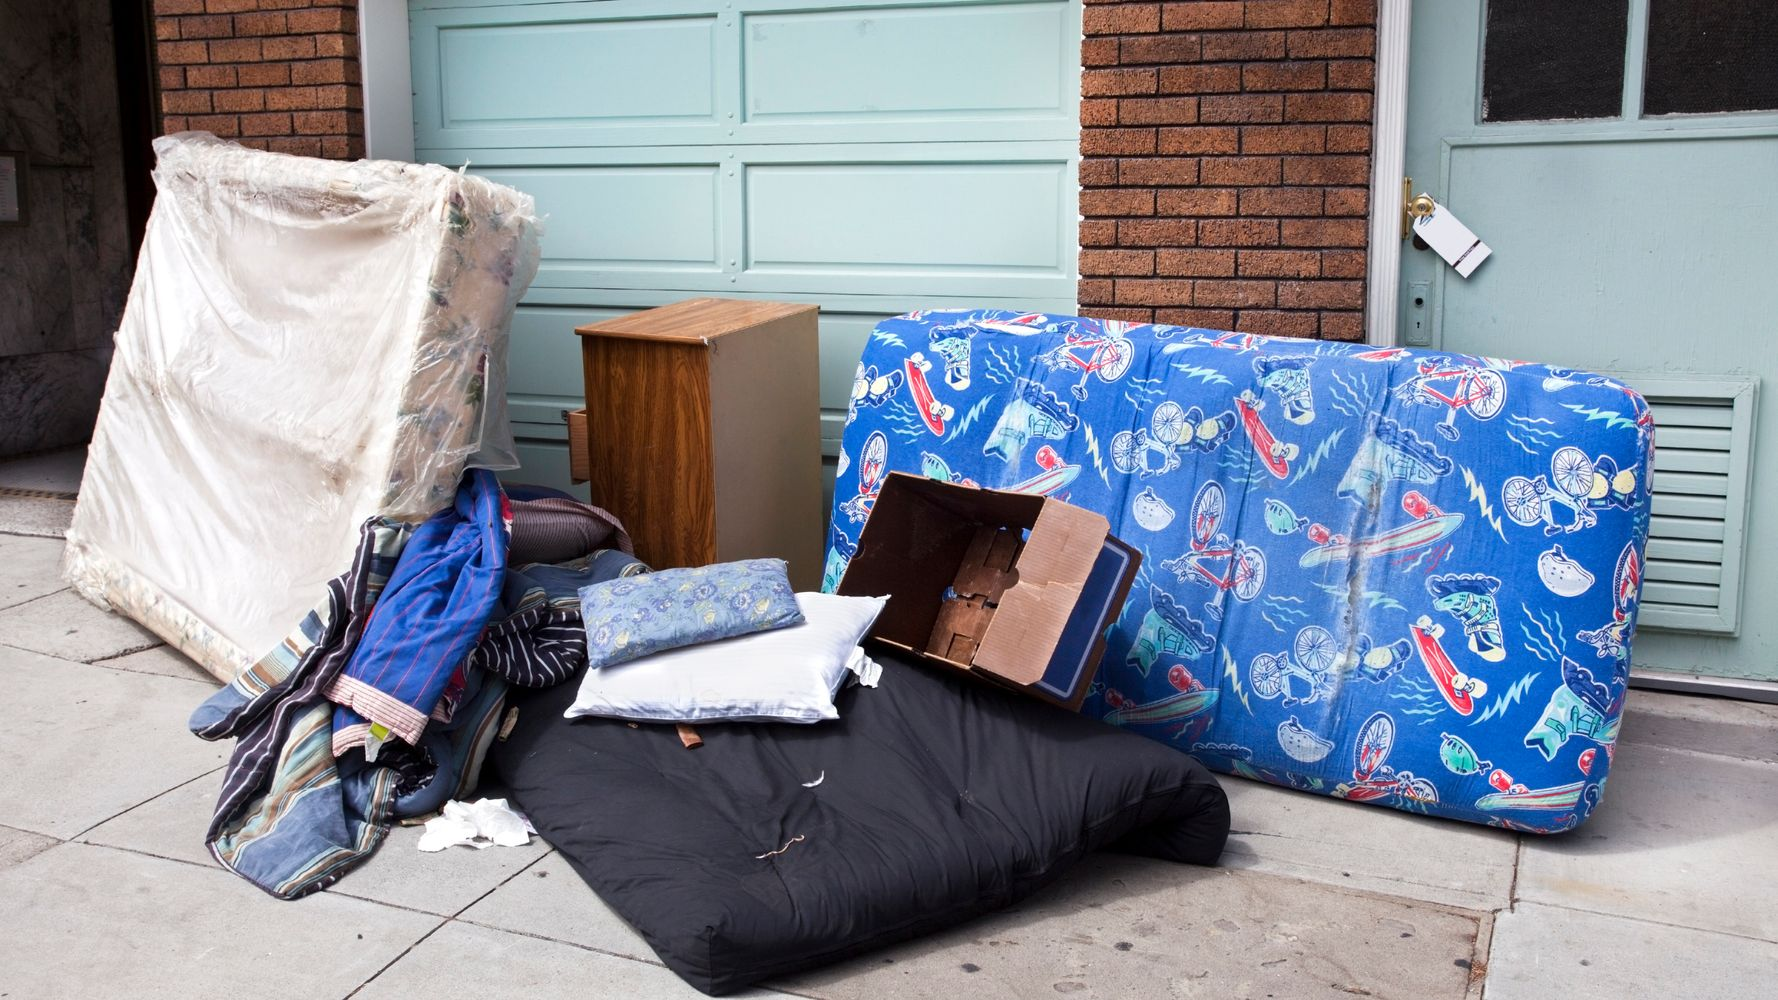 This Is What No One Tells You About Being Evicted